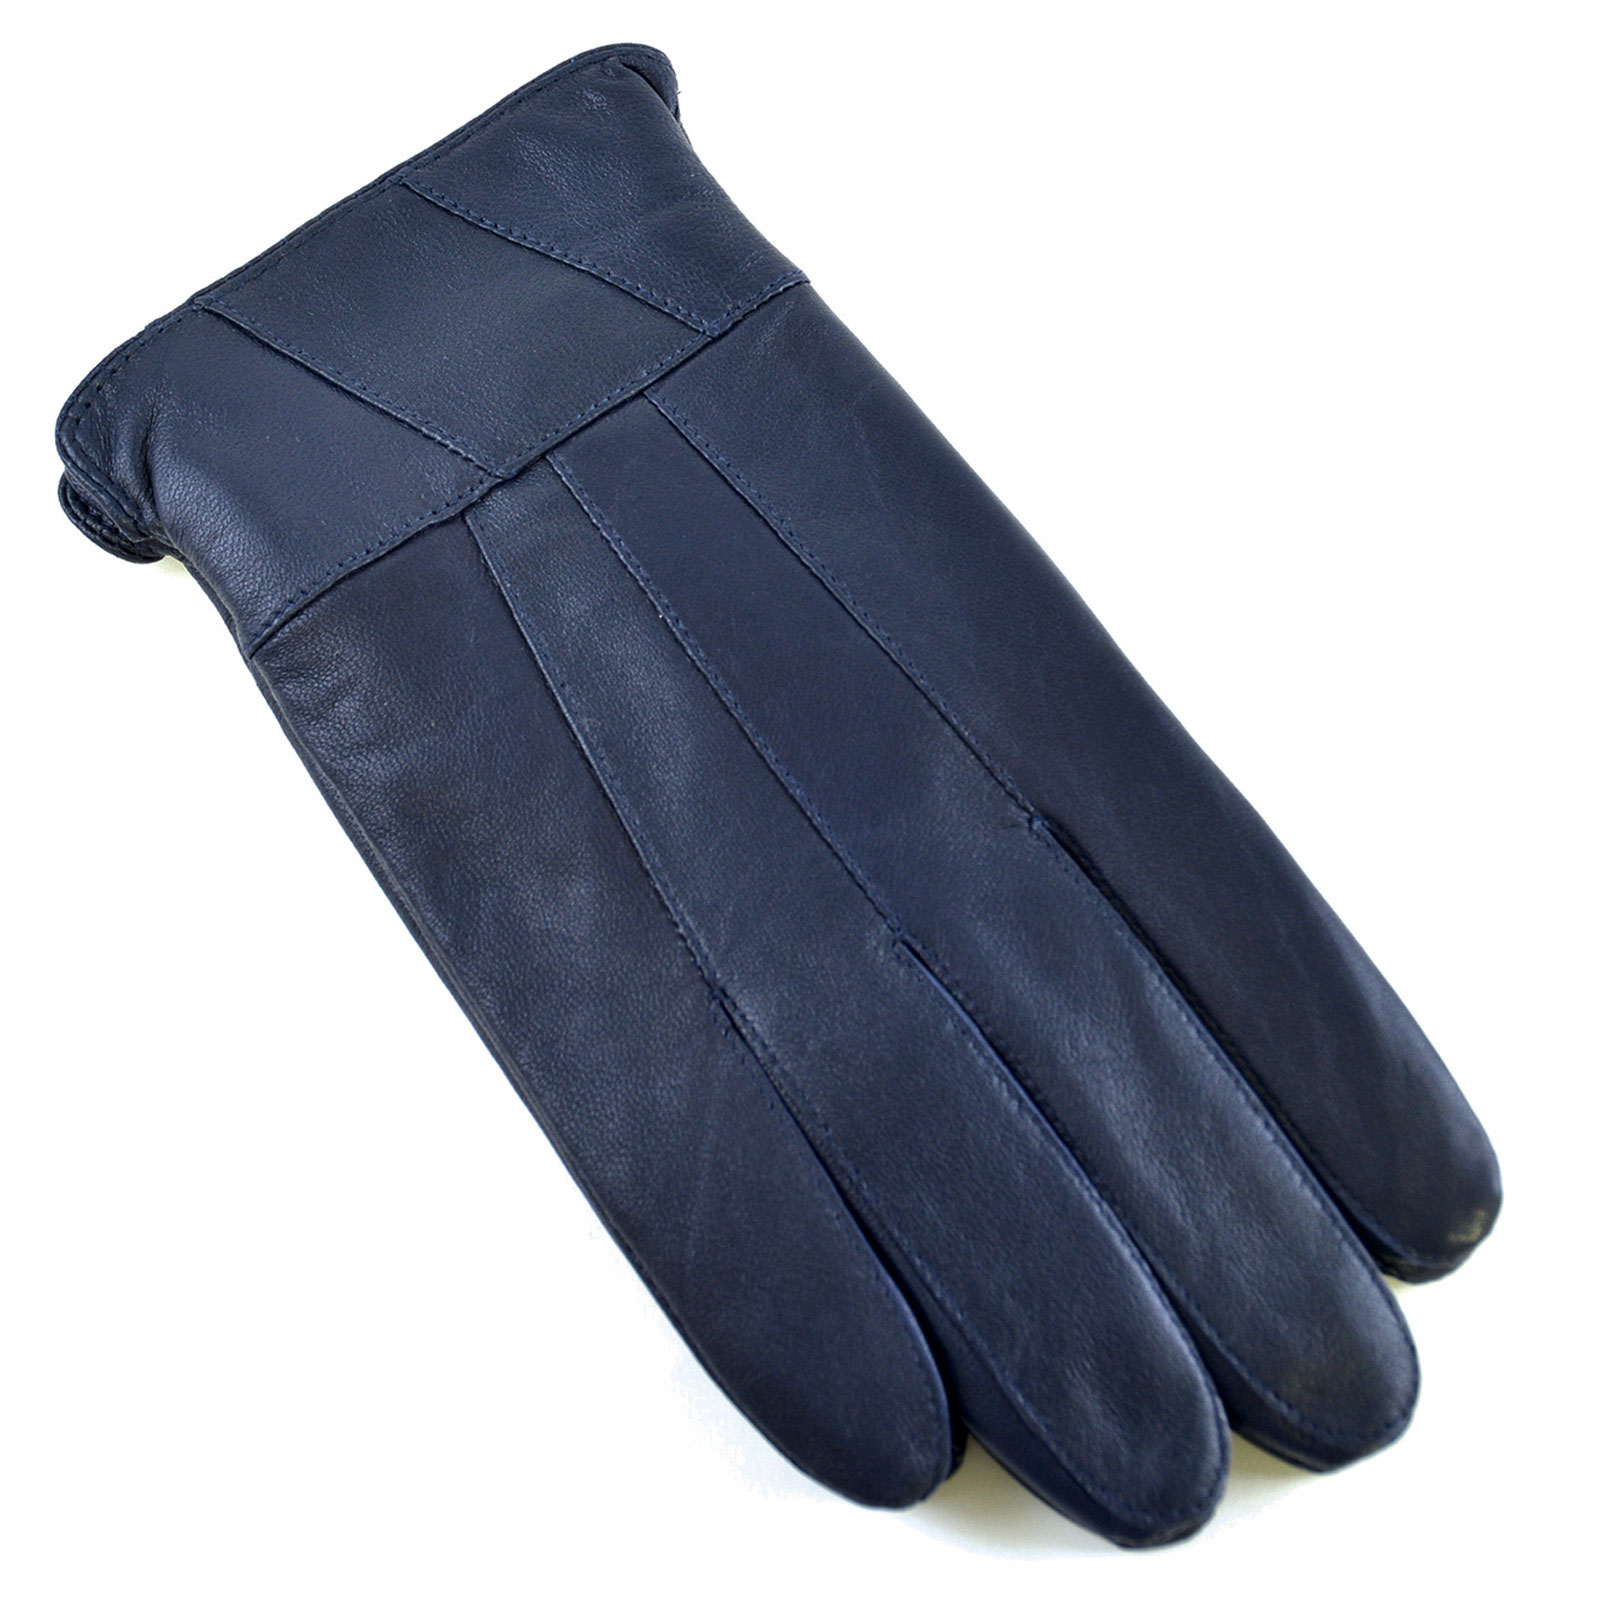 Ladies leather gloves navy blue - Ladies Lined Sheepskin Leather Gloves Winter Rain Outdoor